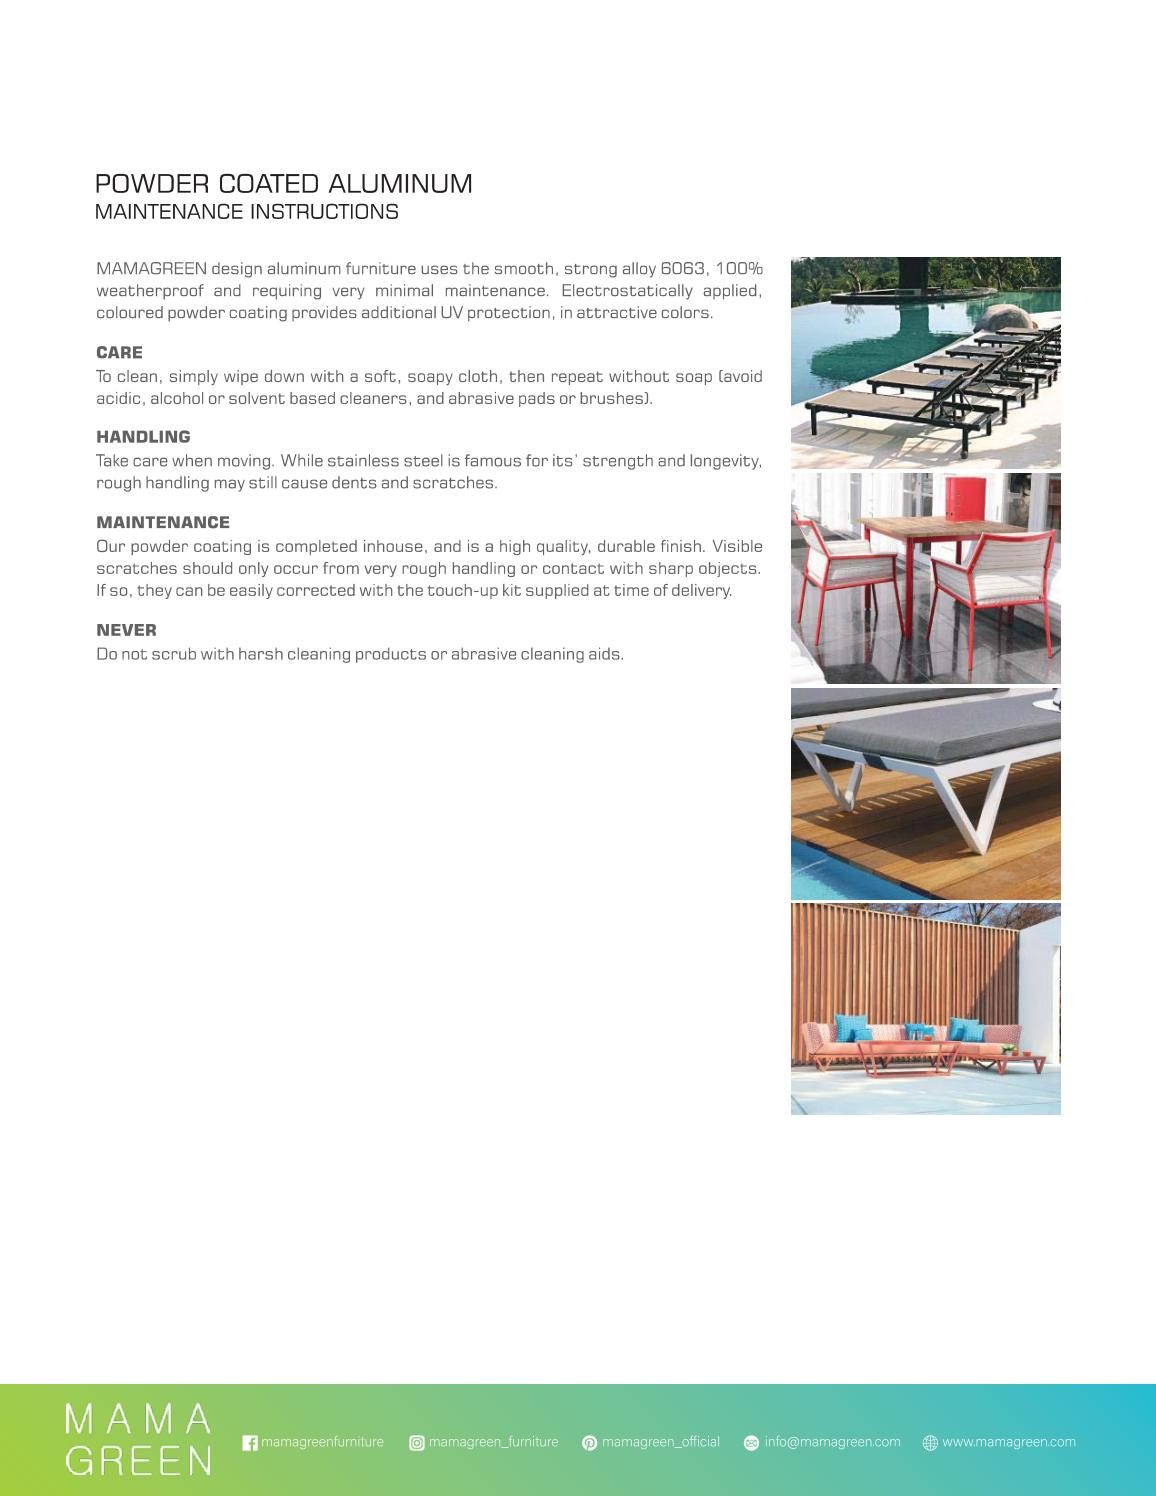 Mamagreen Powder Coated Aluminum Care And Maintenance 2020 By Mamagreen Issuu